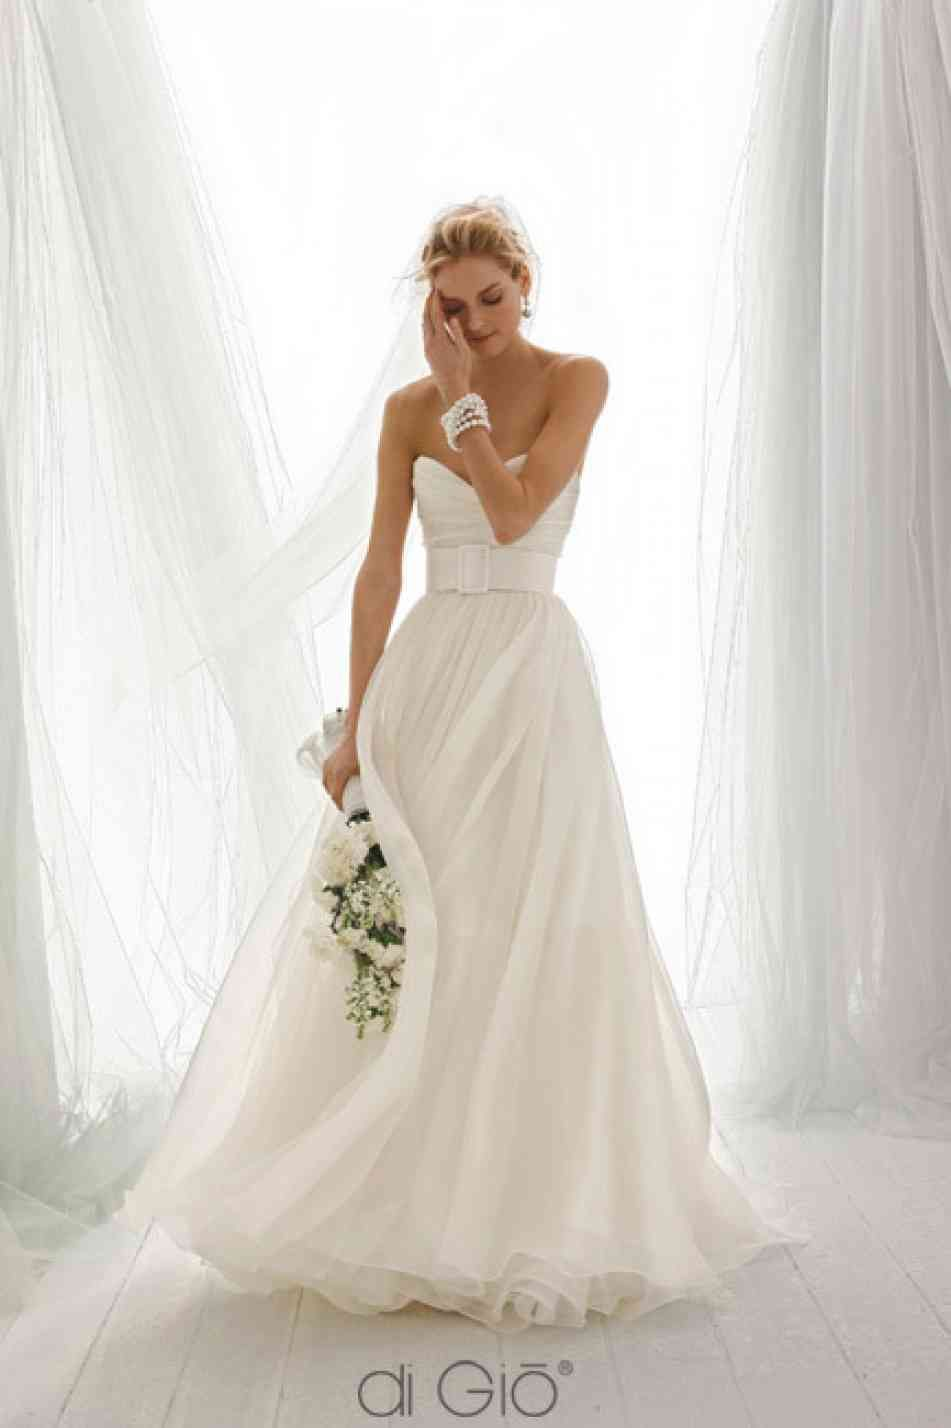 Gorgeous Wedding Dress Collection from Le Spose di Gio | Dress ...